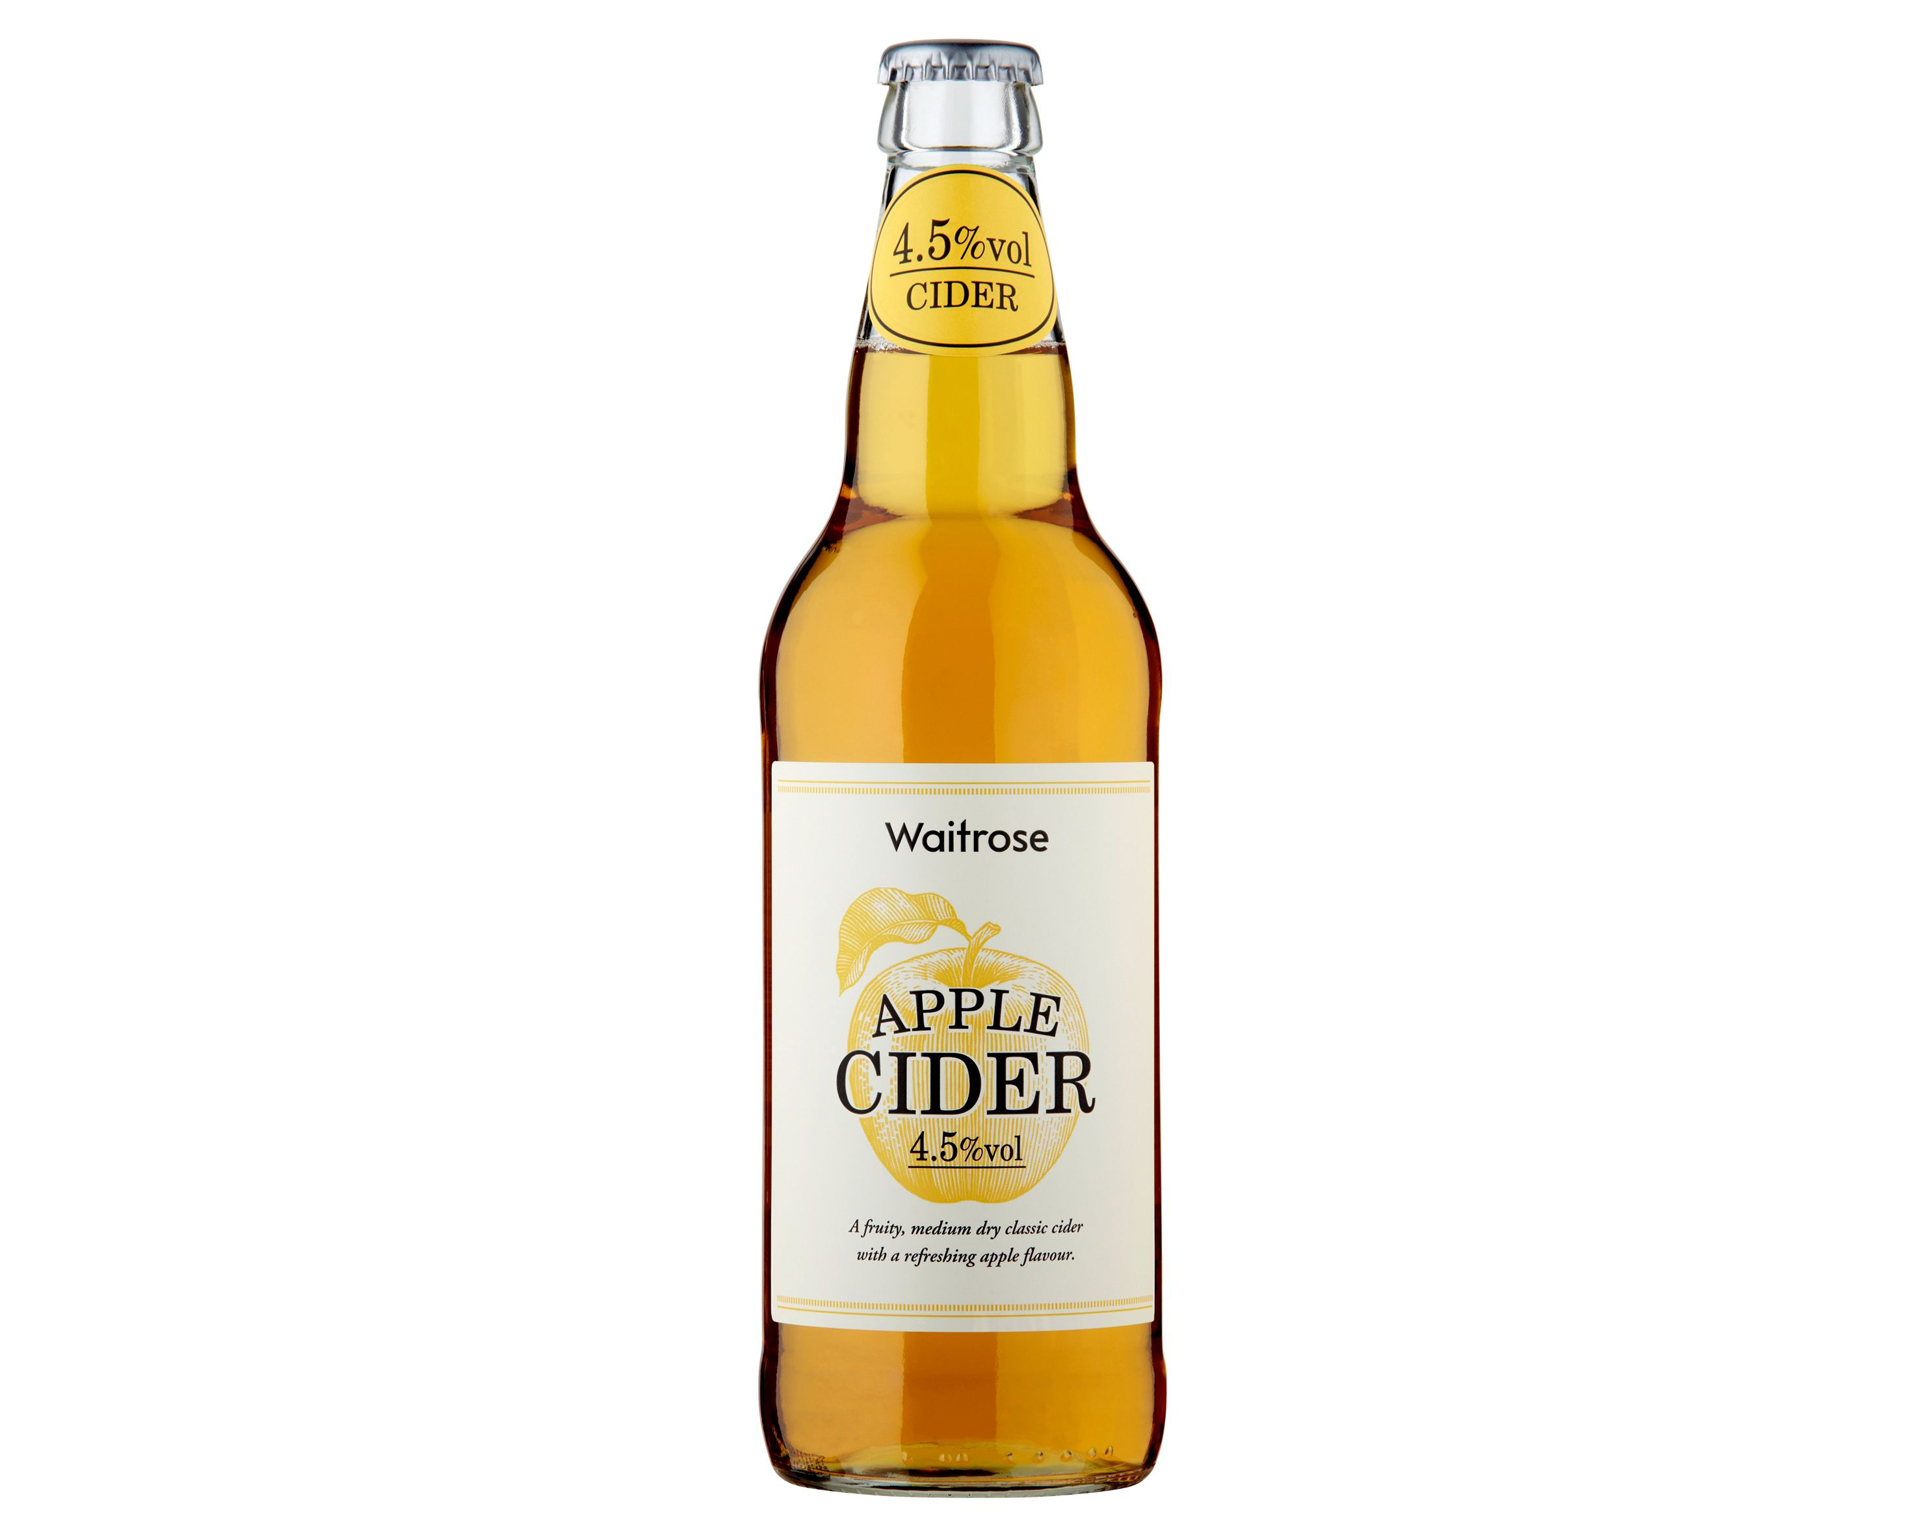 Waitrose Apple Cider (Waitrose/PA)